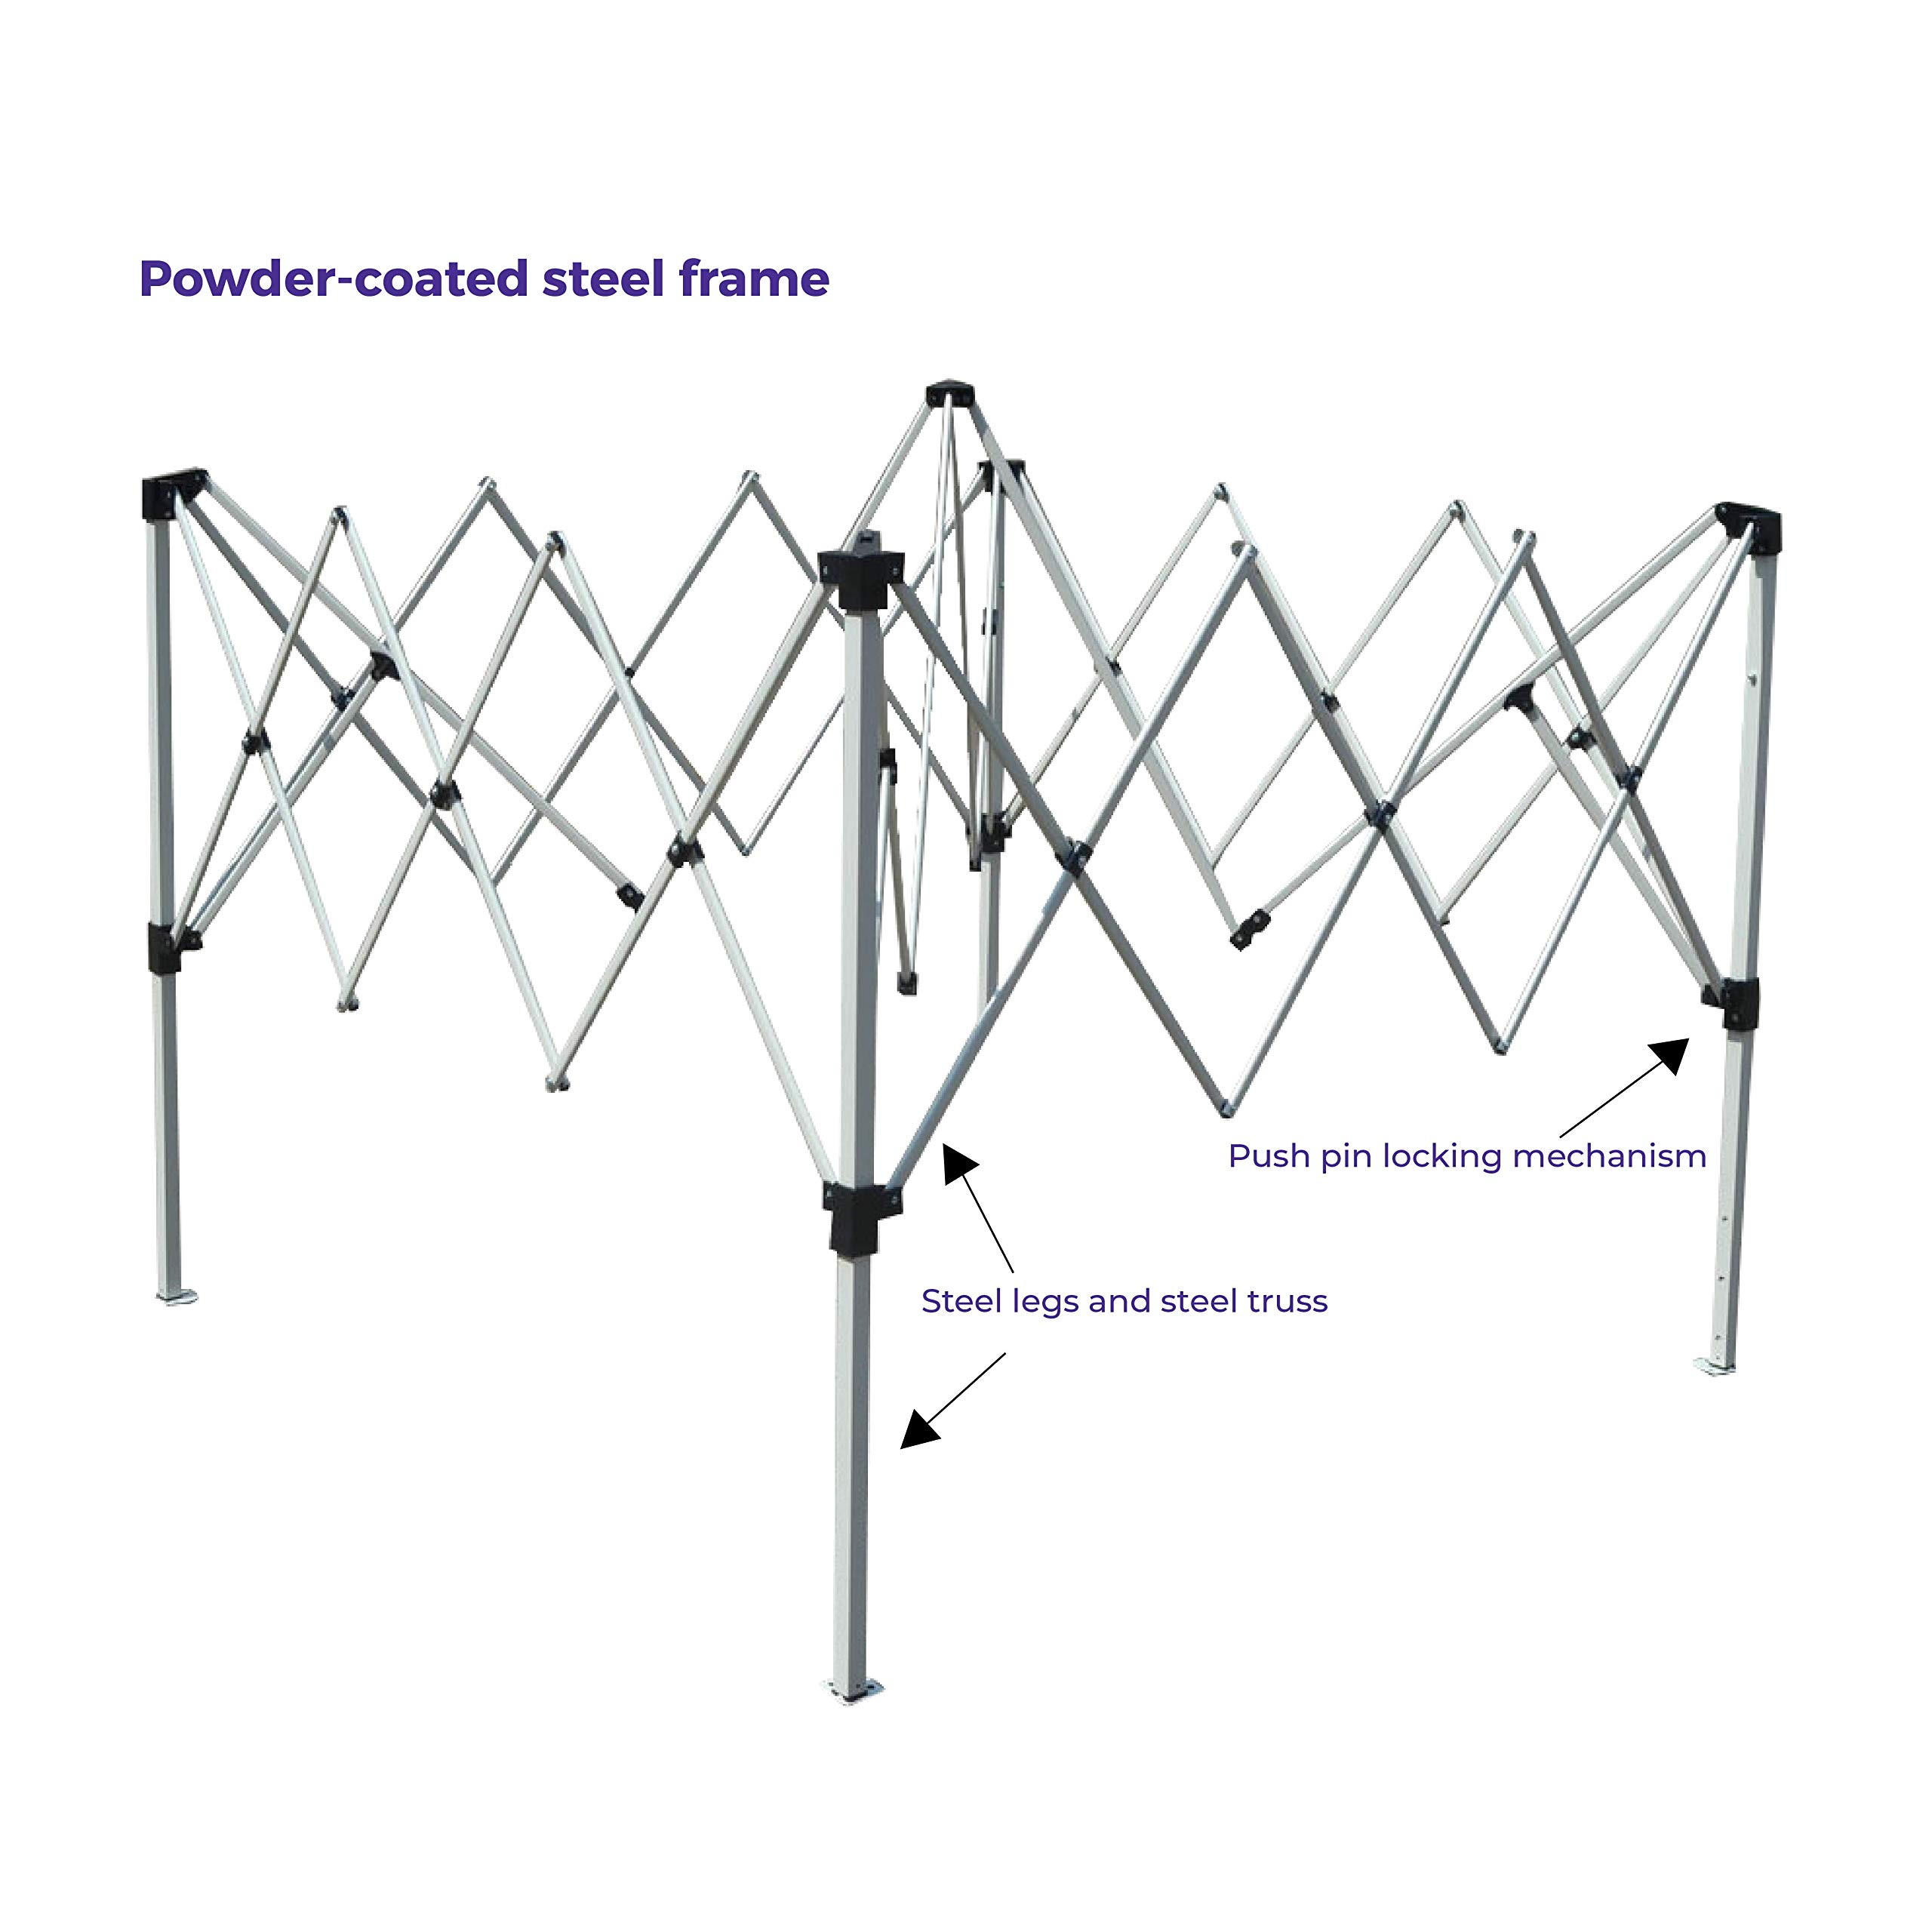 Impact Canopy 10' x 10' Pop-Up Canopy Tent, Instant Slant-Leg Portable Shade Tent with Carrying Bag, White by Impact Canopy (Image #2)